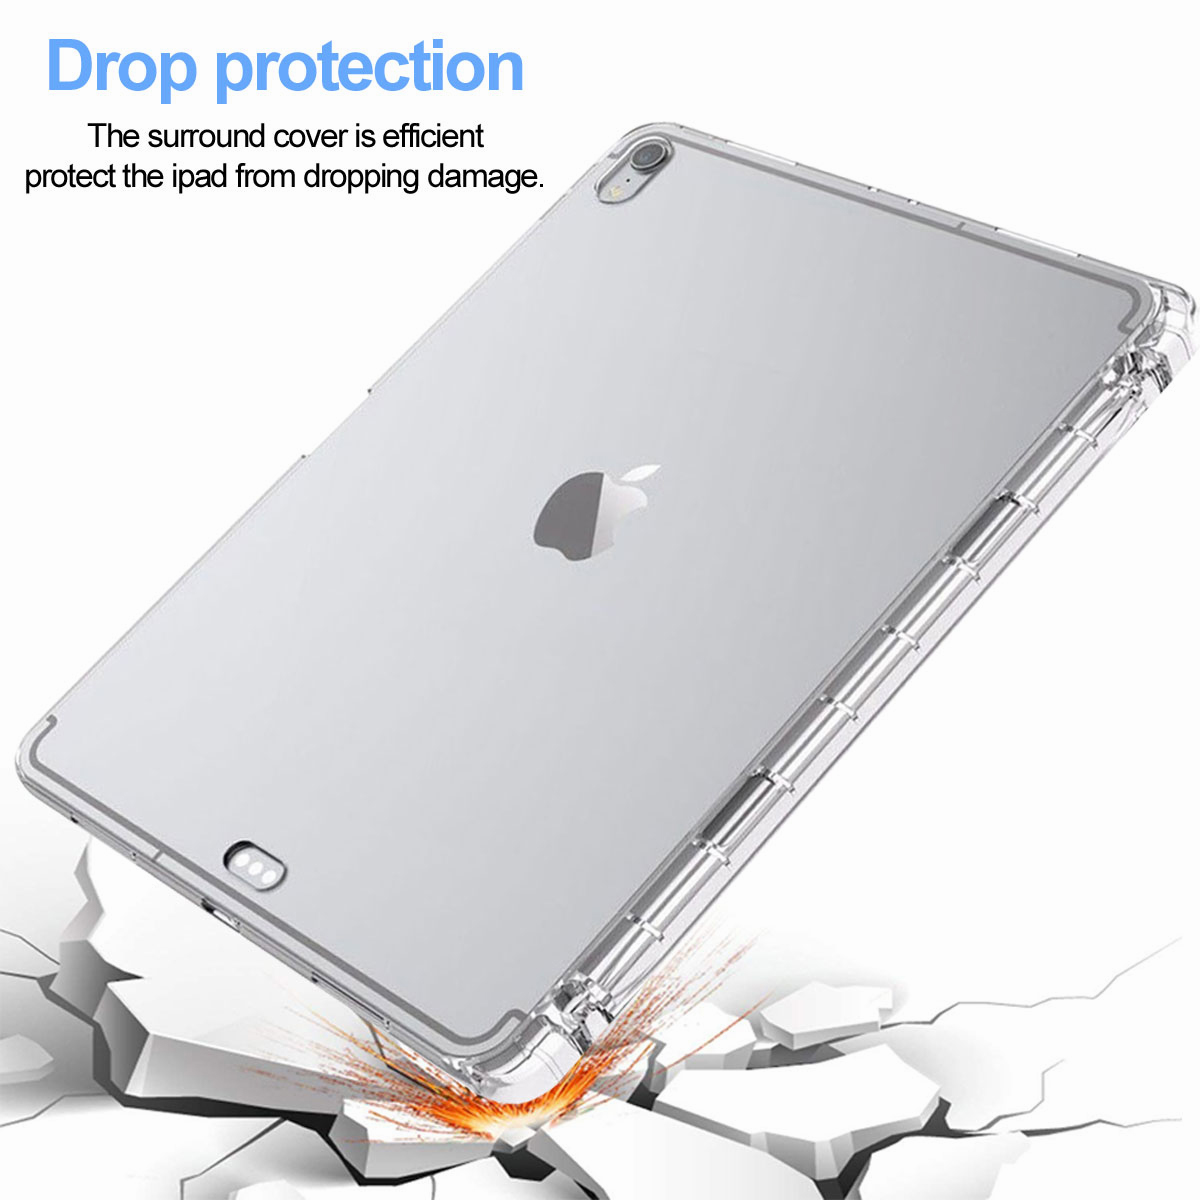 Transparent-Clear-Case-For-New-iPad-Pro-11-Inch-2018-Slim-Protective-Case-Cover thumbnail 16